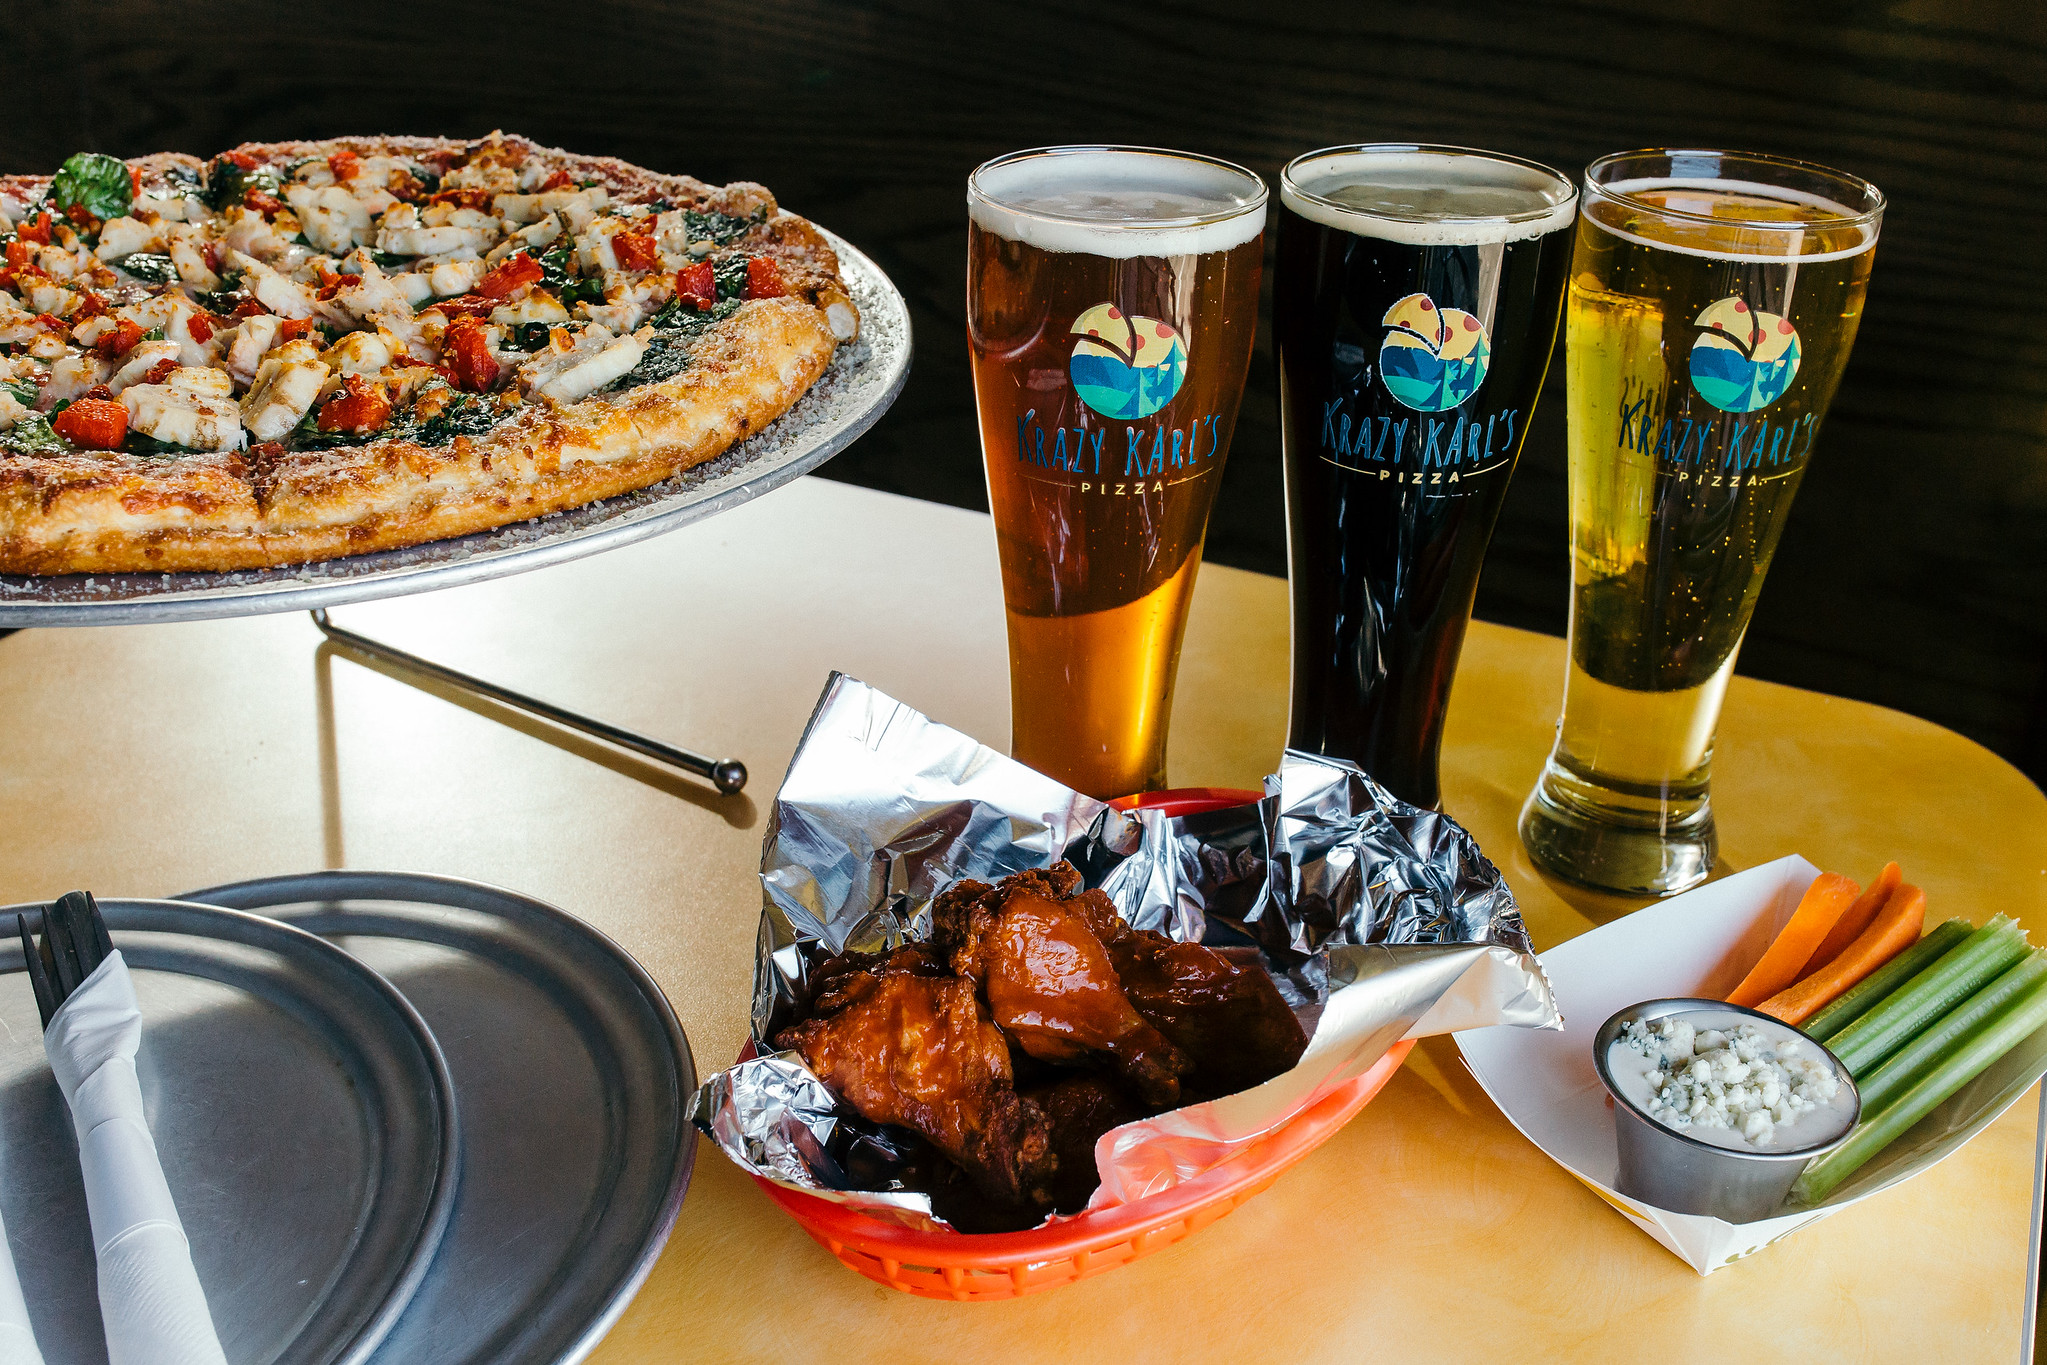 Top 2018 Posts - Krazy Karl's Pizza, Wings and Beer